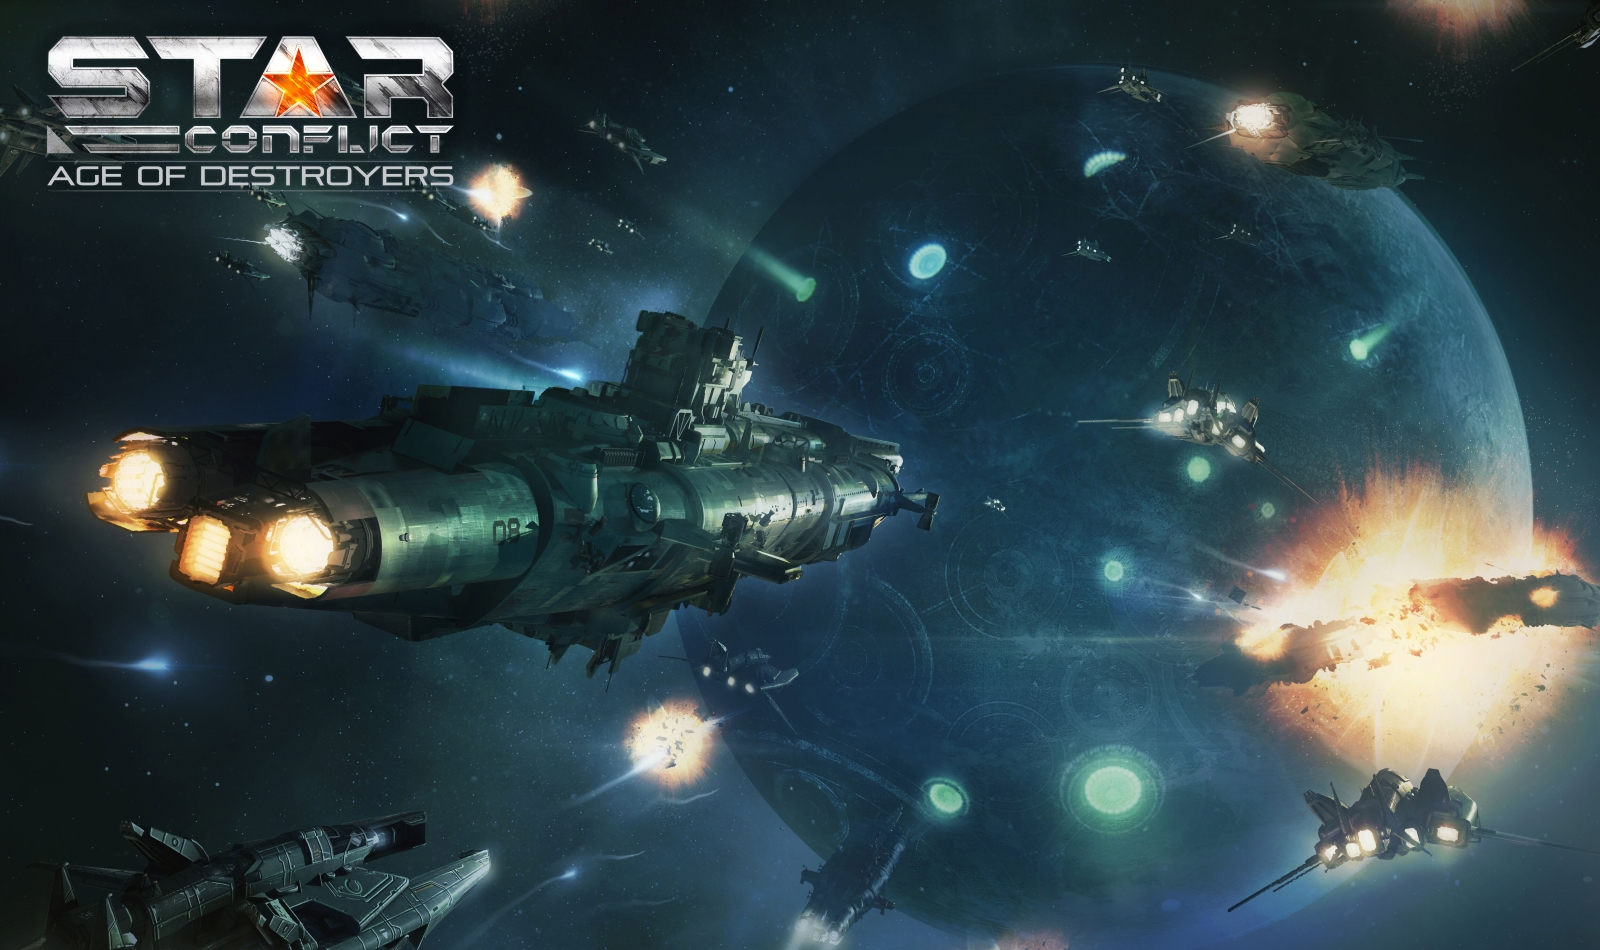 Star Conflict Launches Age of Destroyers Update news header